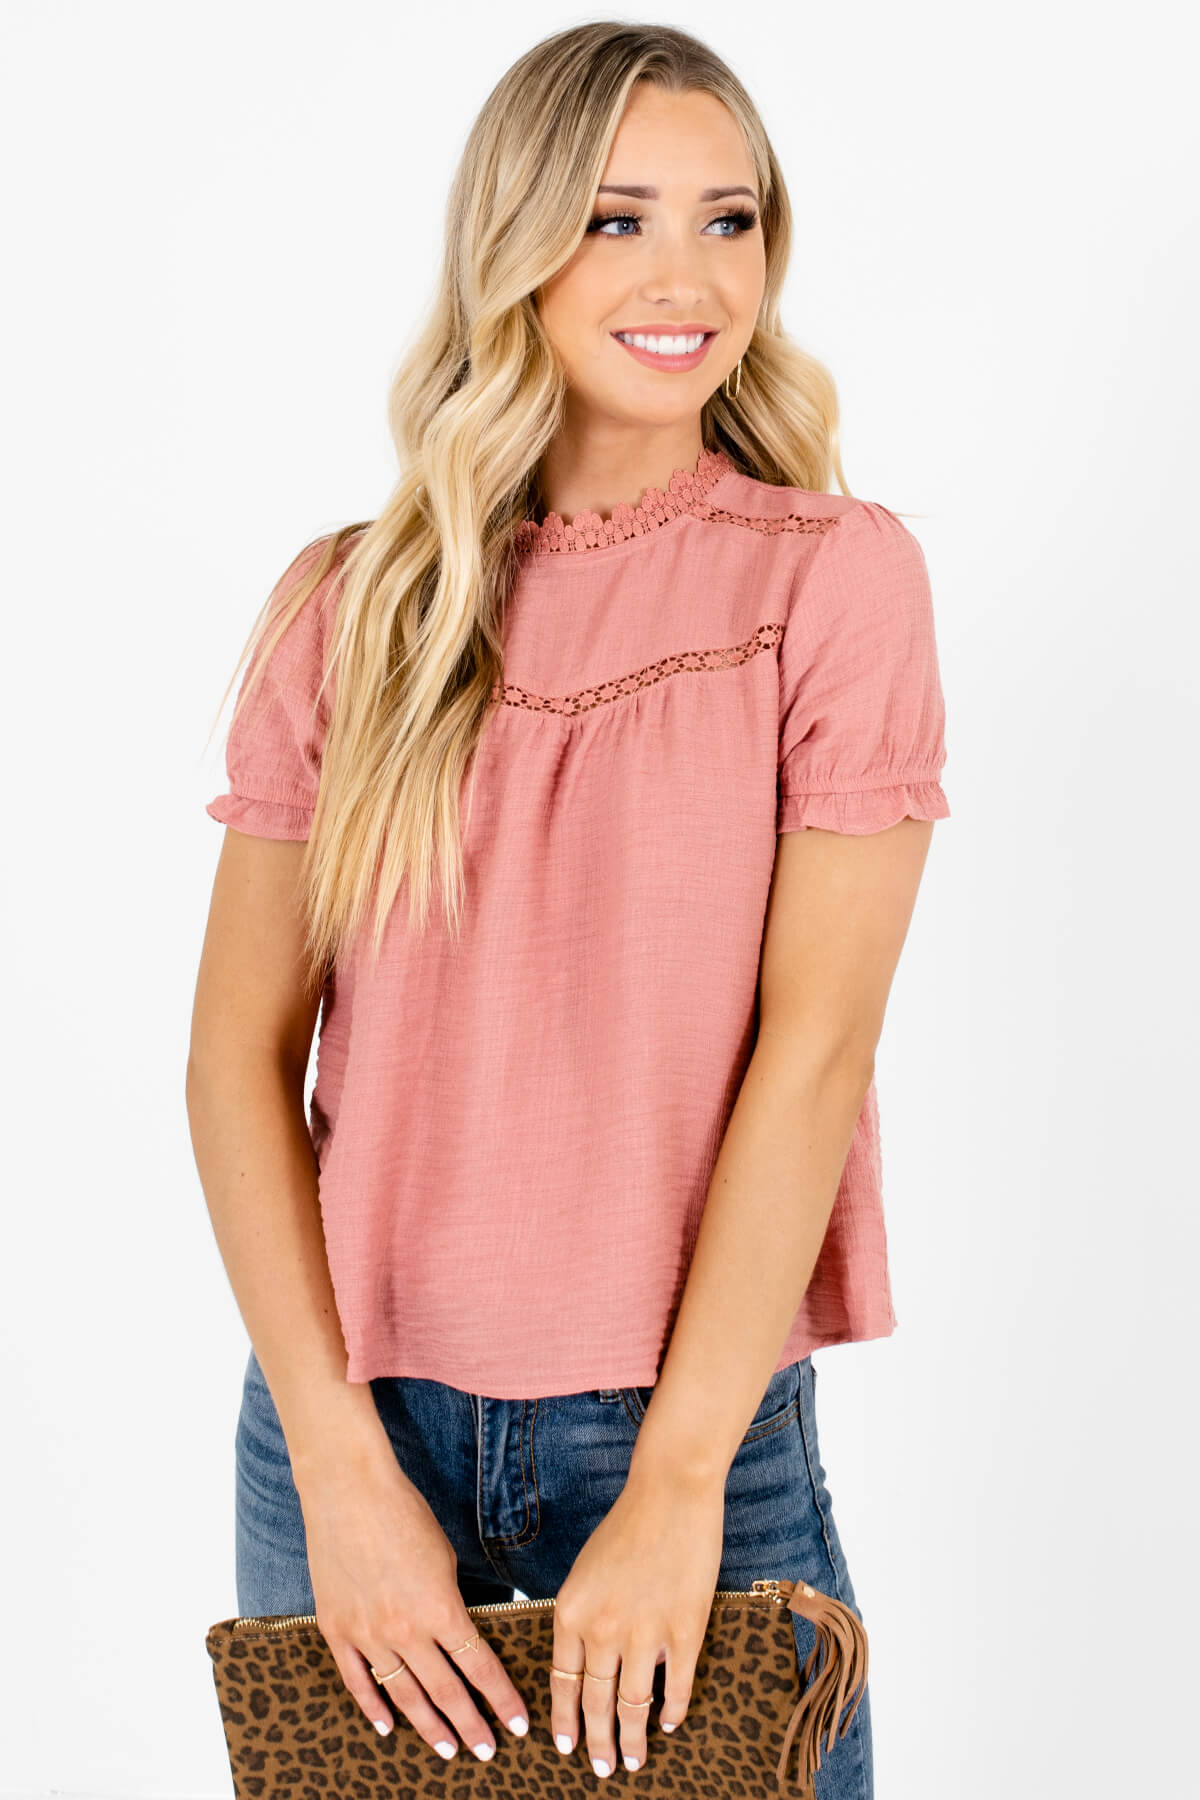 Pink Crochet Accented Boutique Blouses for Women